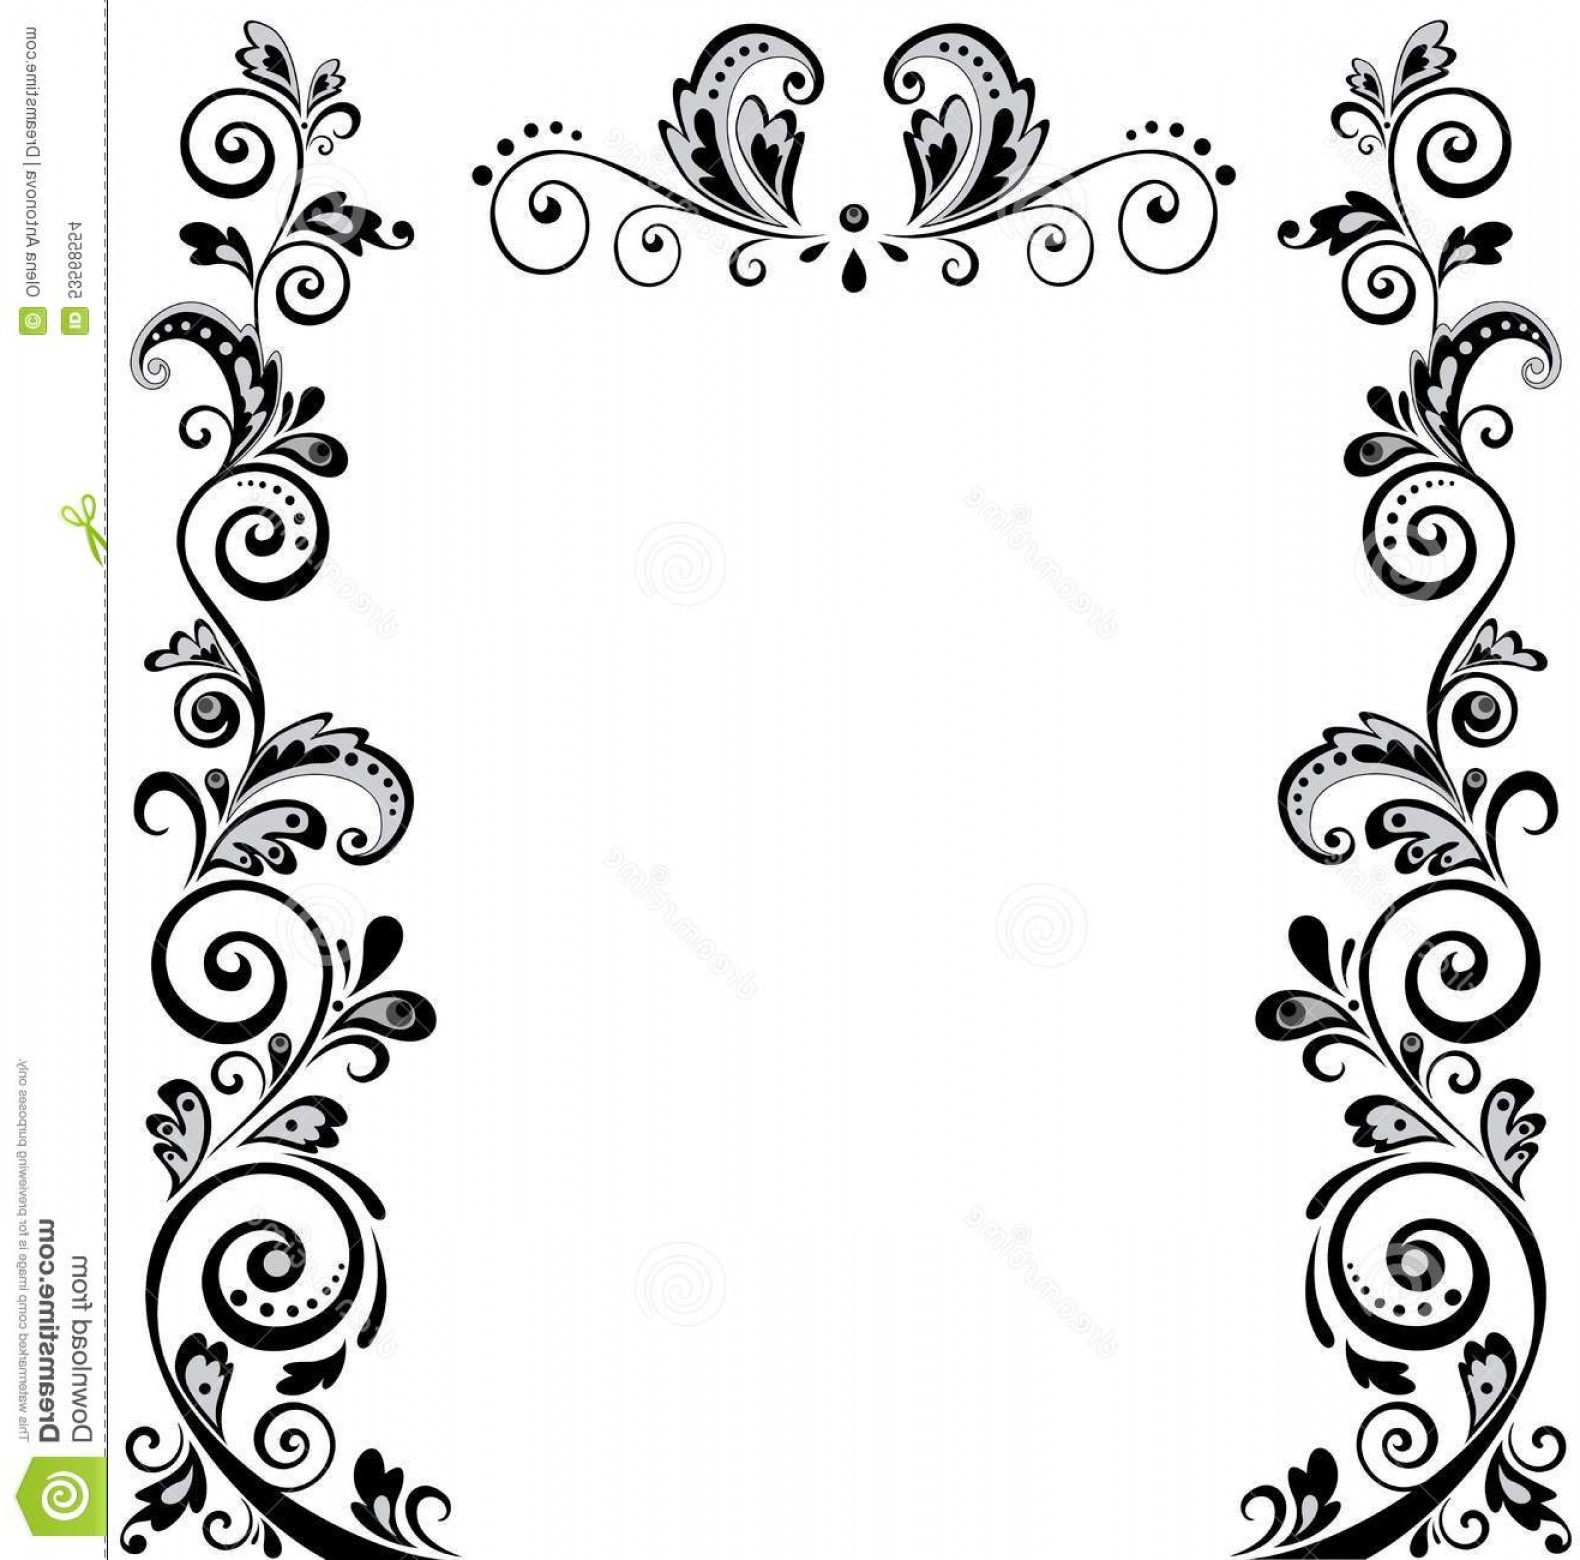 Simple Paisley Vector Border: Stock Illustration Vintage Wedding Border Floral Black White Image